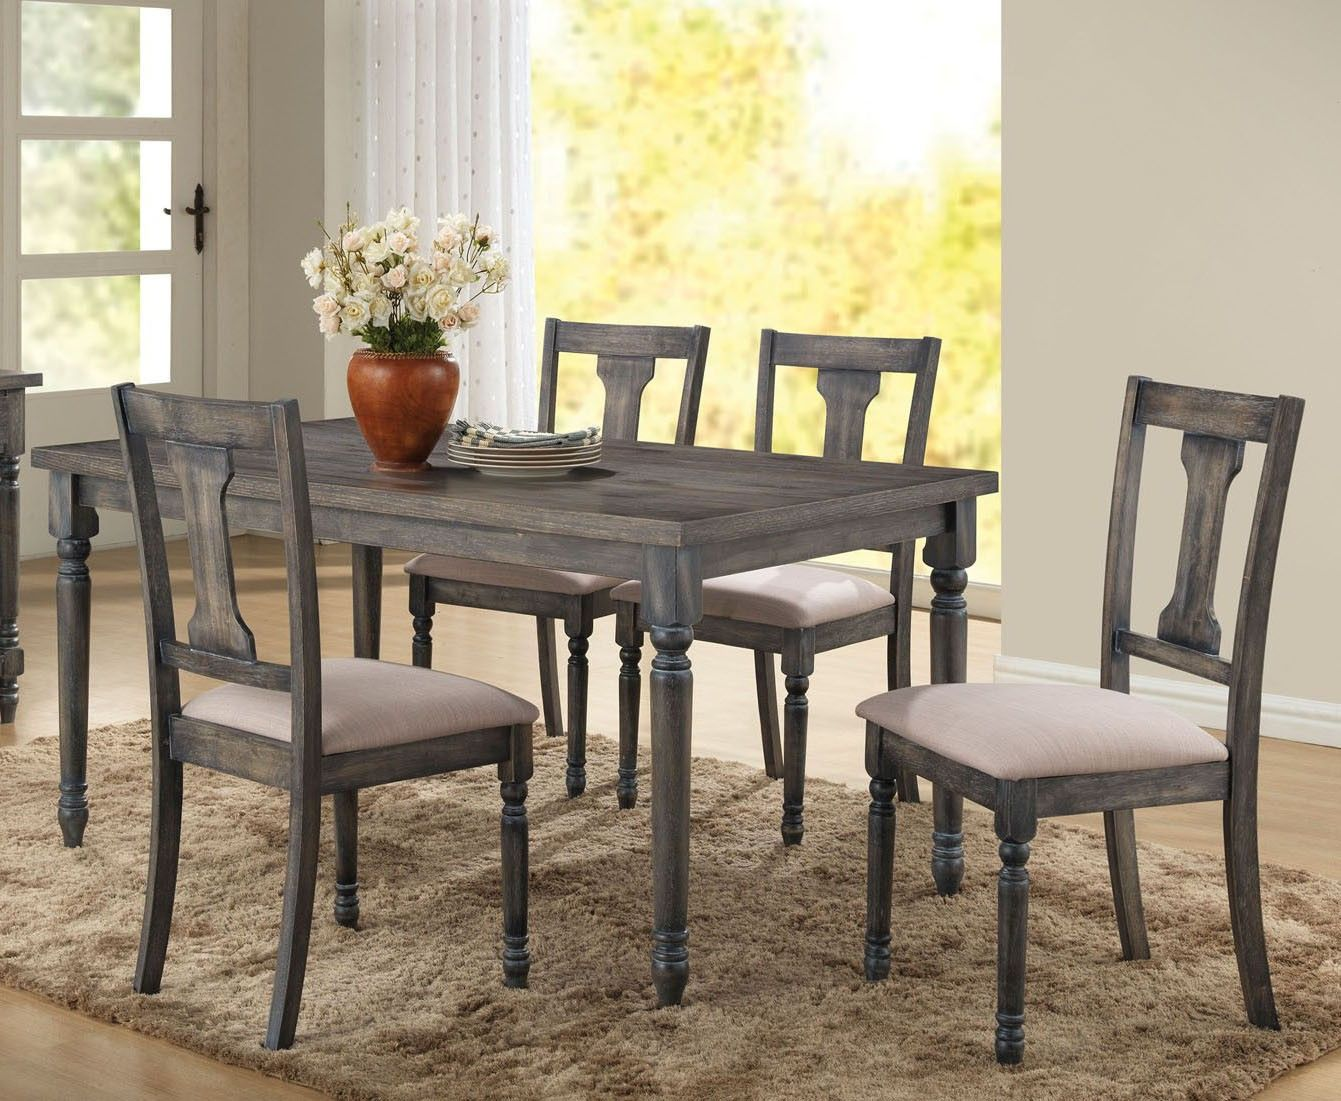 Acme 71435 Wallace 5Pcs Weathered Blue Washed Wood Dining Table Prepossessing Acme Dining Room Set Design Decoration